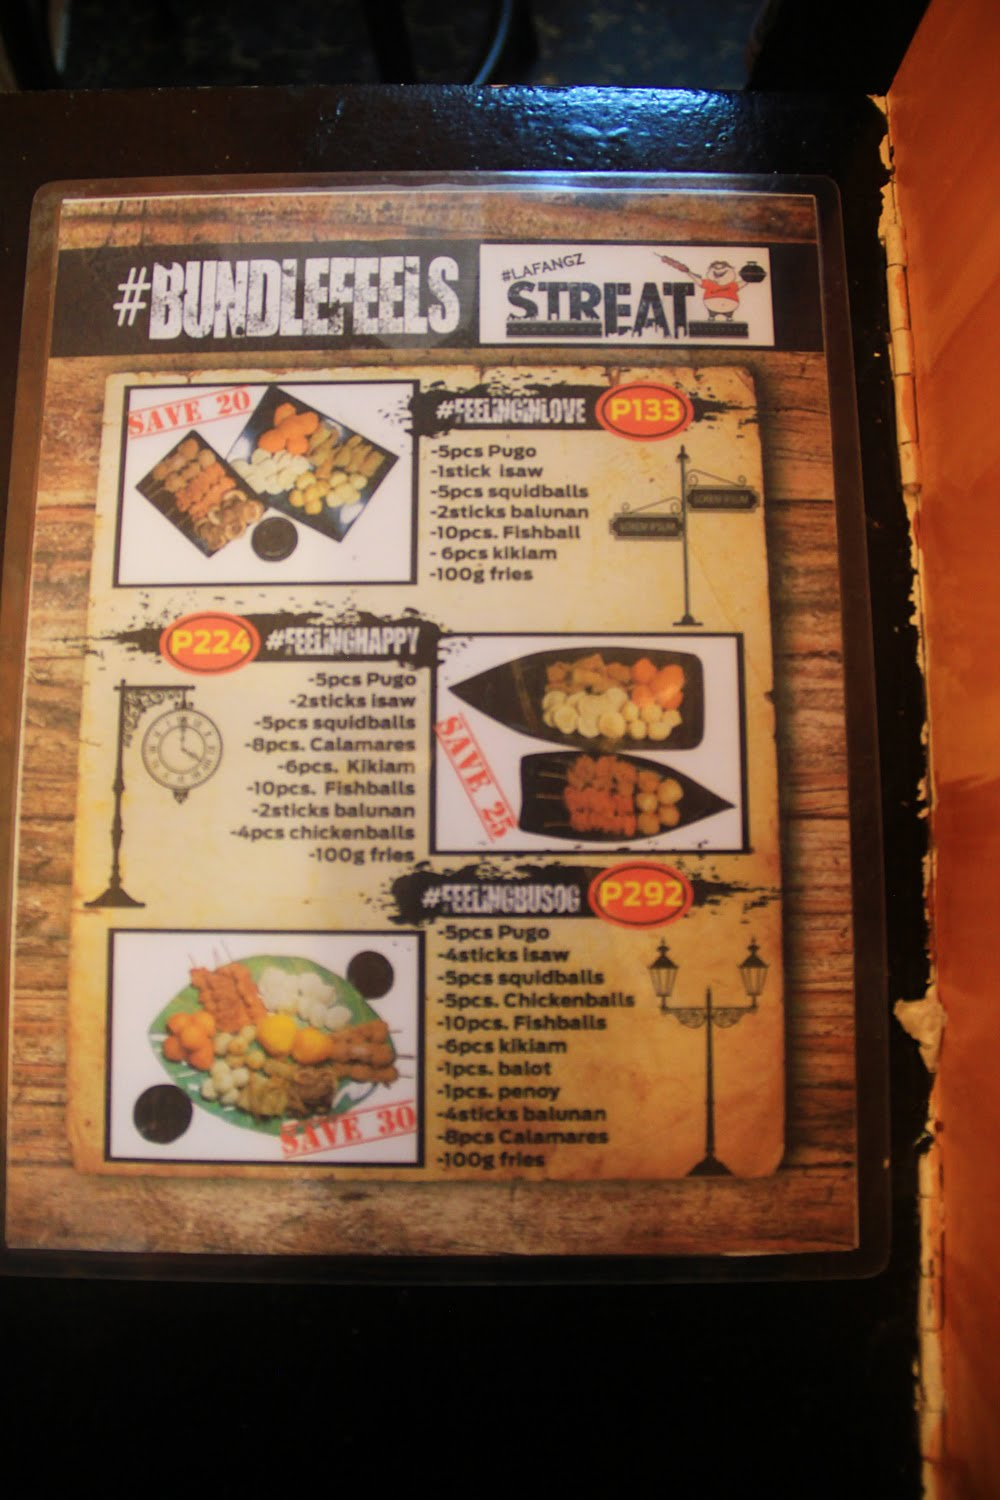 LafangzStreats Menu